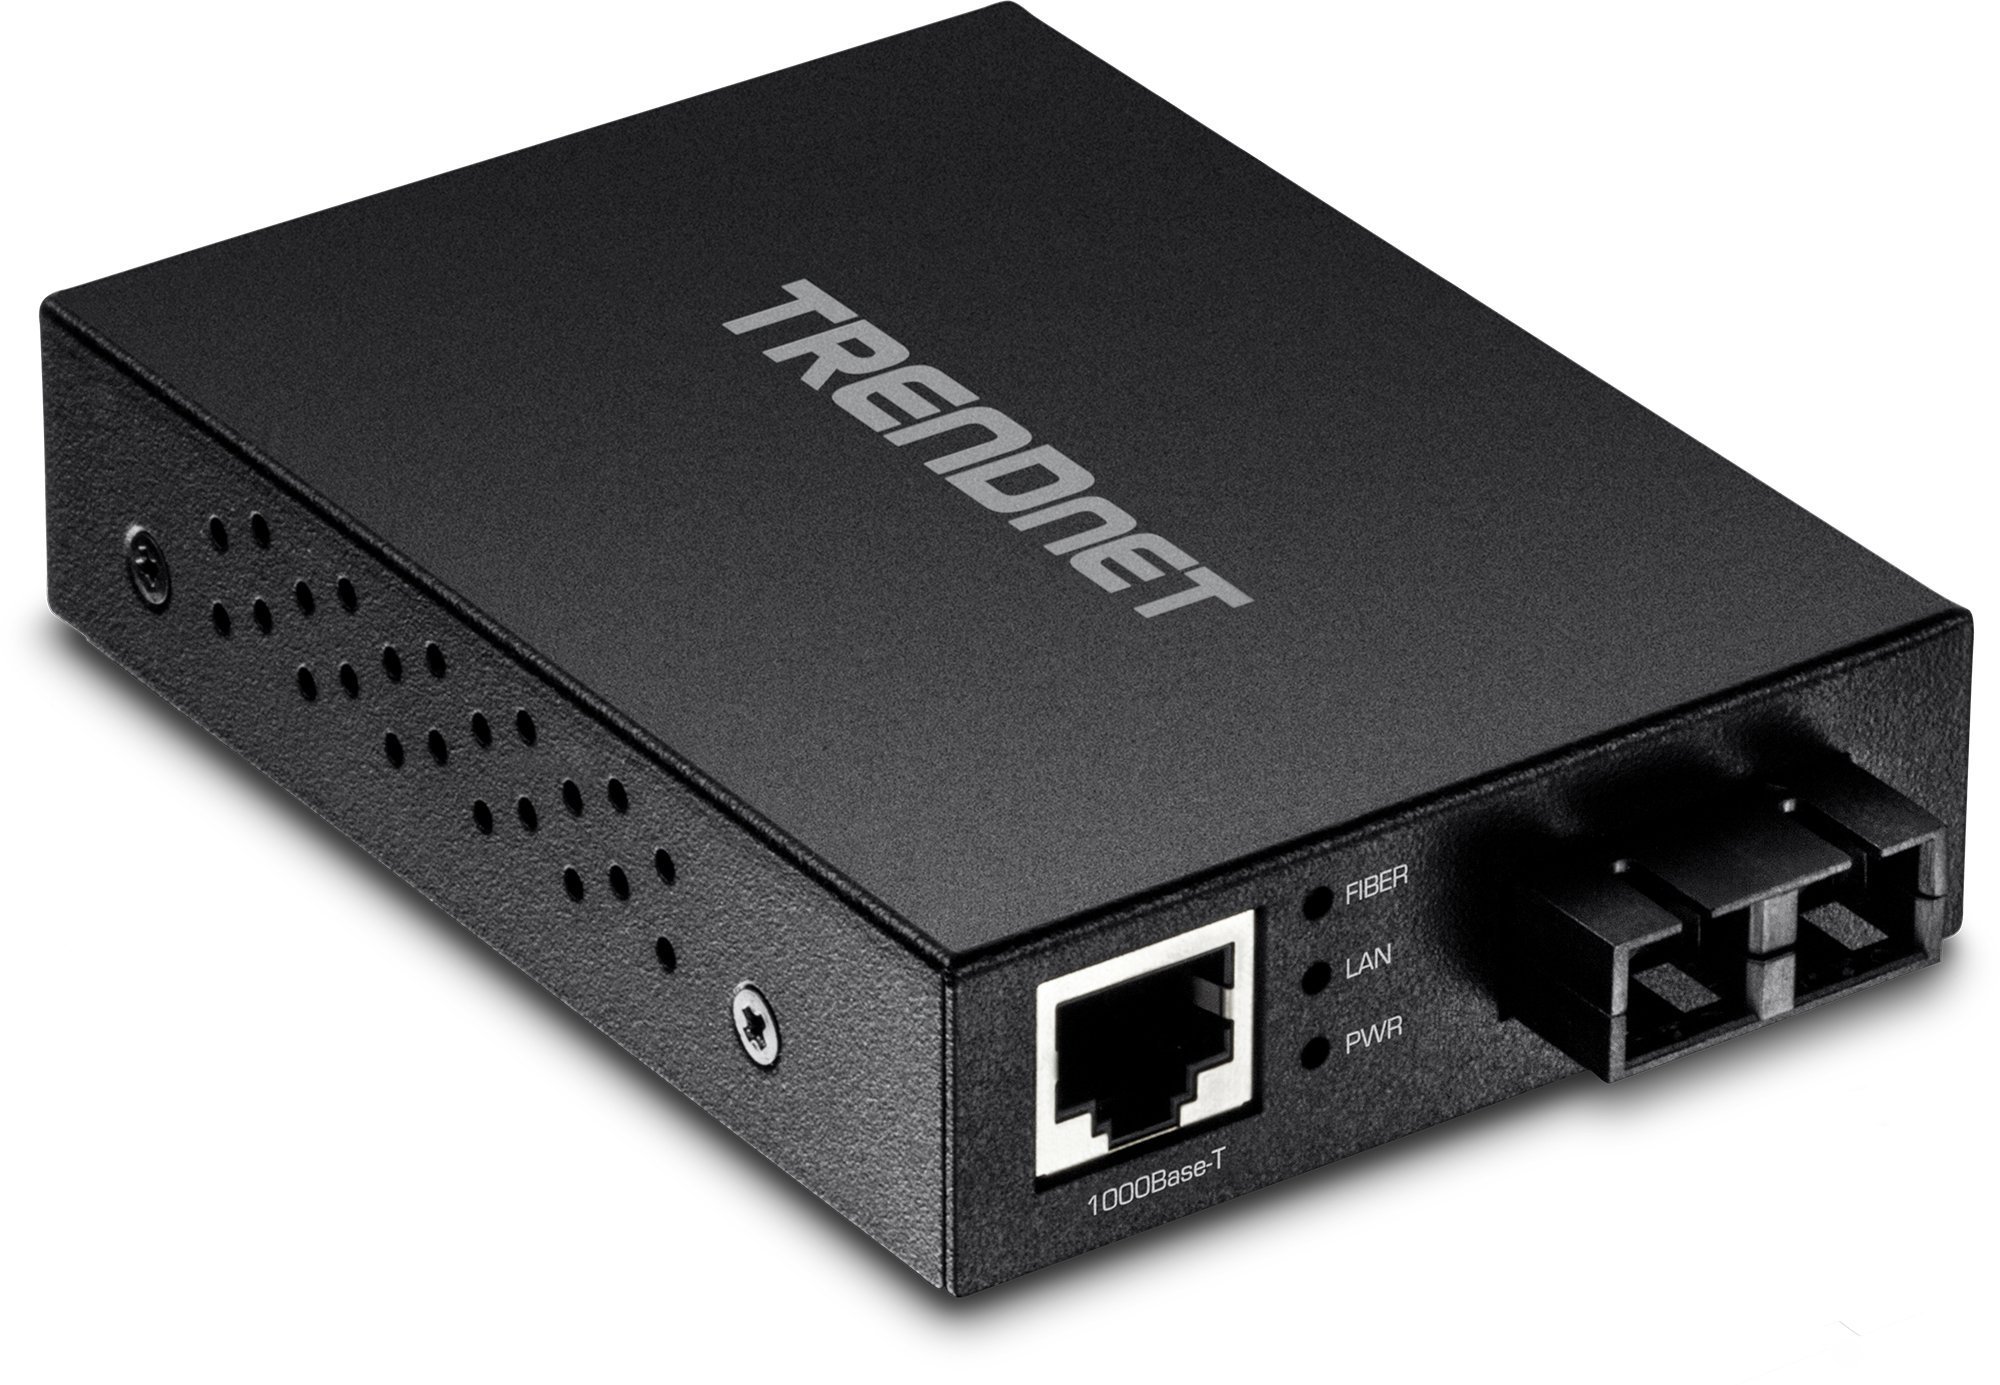 TRENDnet 1000Base-T to 1000Base-SX Multi-Mode SC Fiber Converter, Up to 550m (1800 ft.), 2 Gbps Switching Capacity, TFC-GMSC